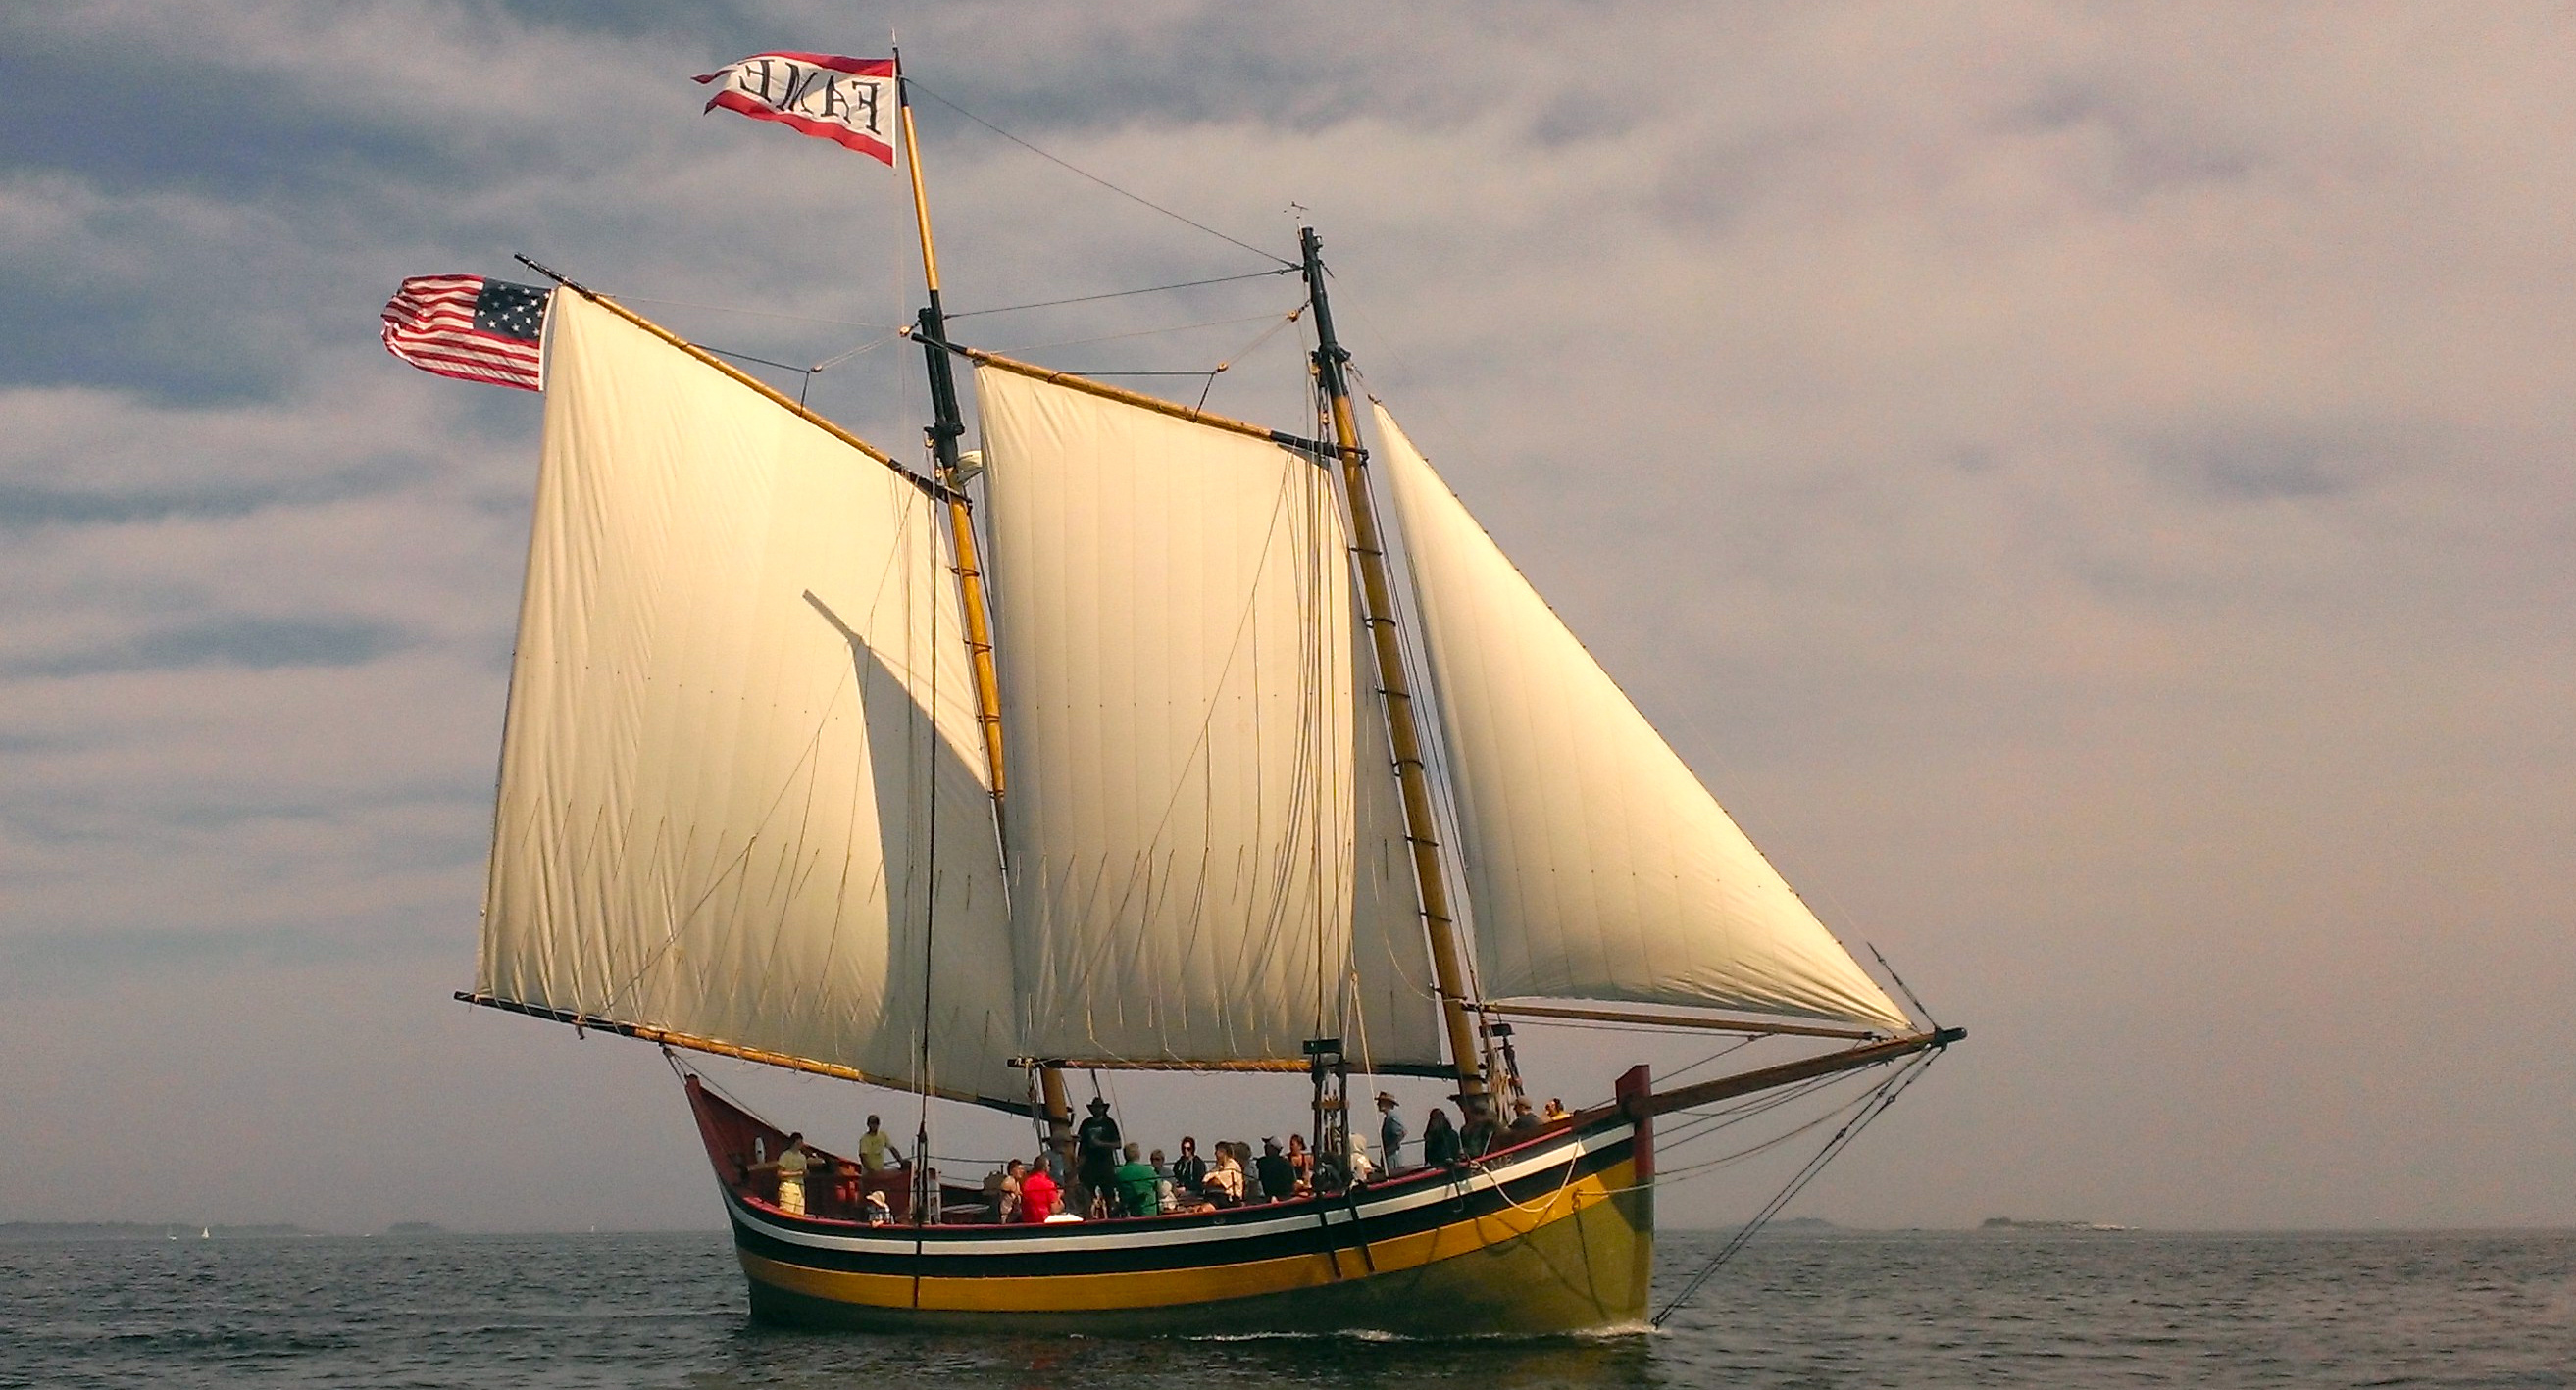 Replica of an 1812 privateer